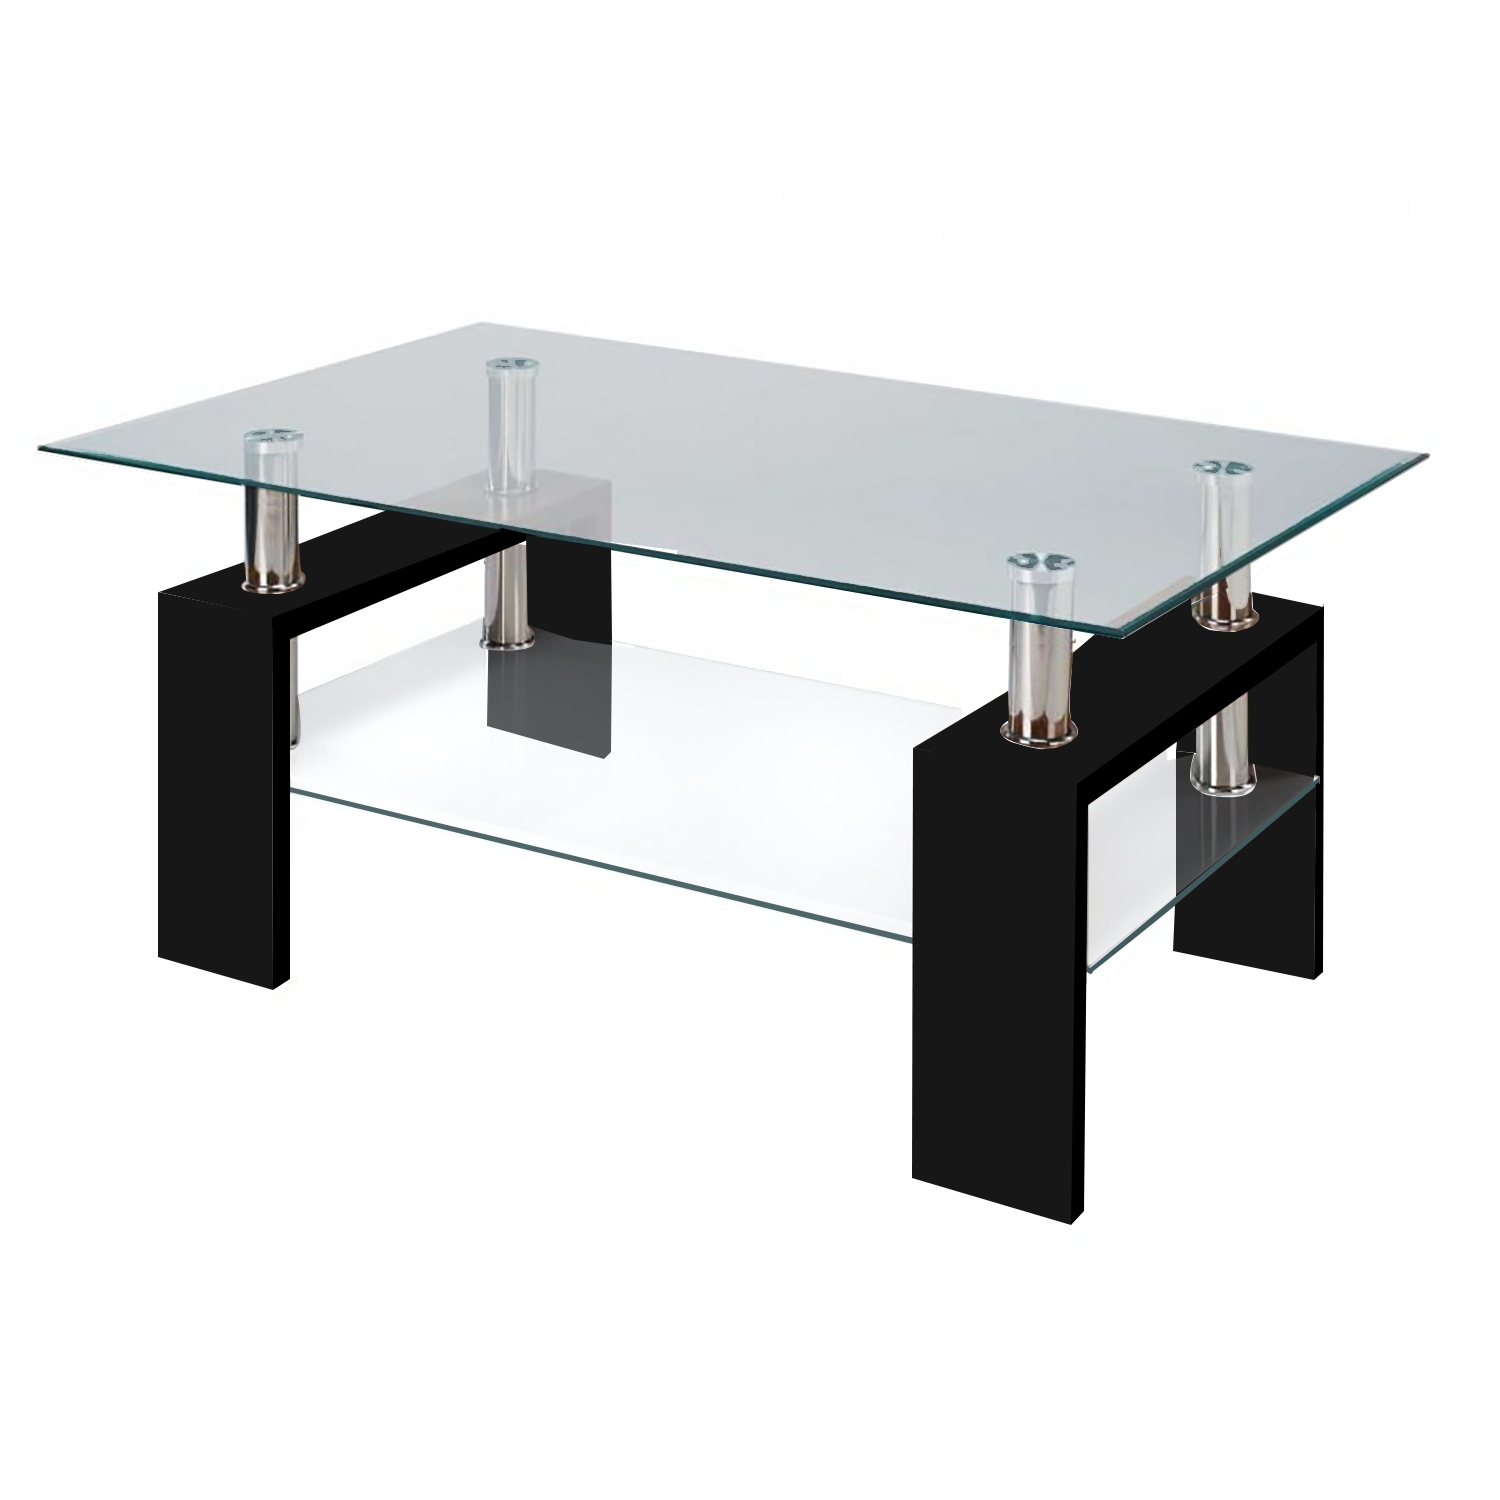 Glass Table Tops And Mirrors | Fab Glass And Mirror for Thick Glass Coffee Table (Image 7 of 15)